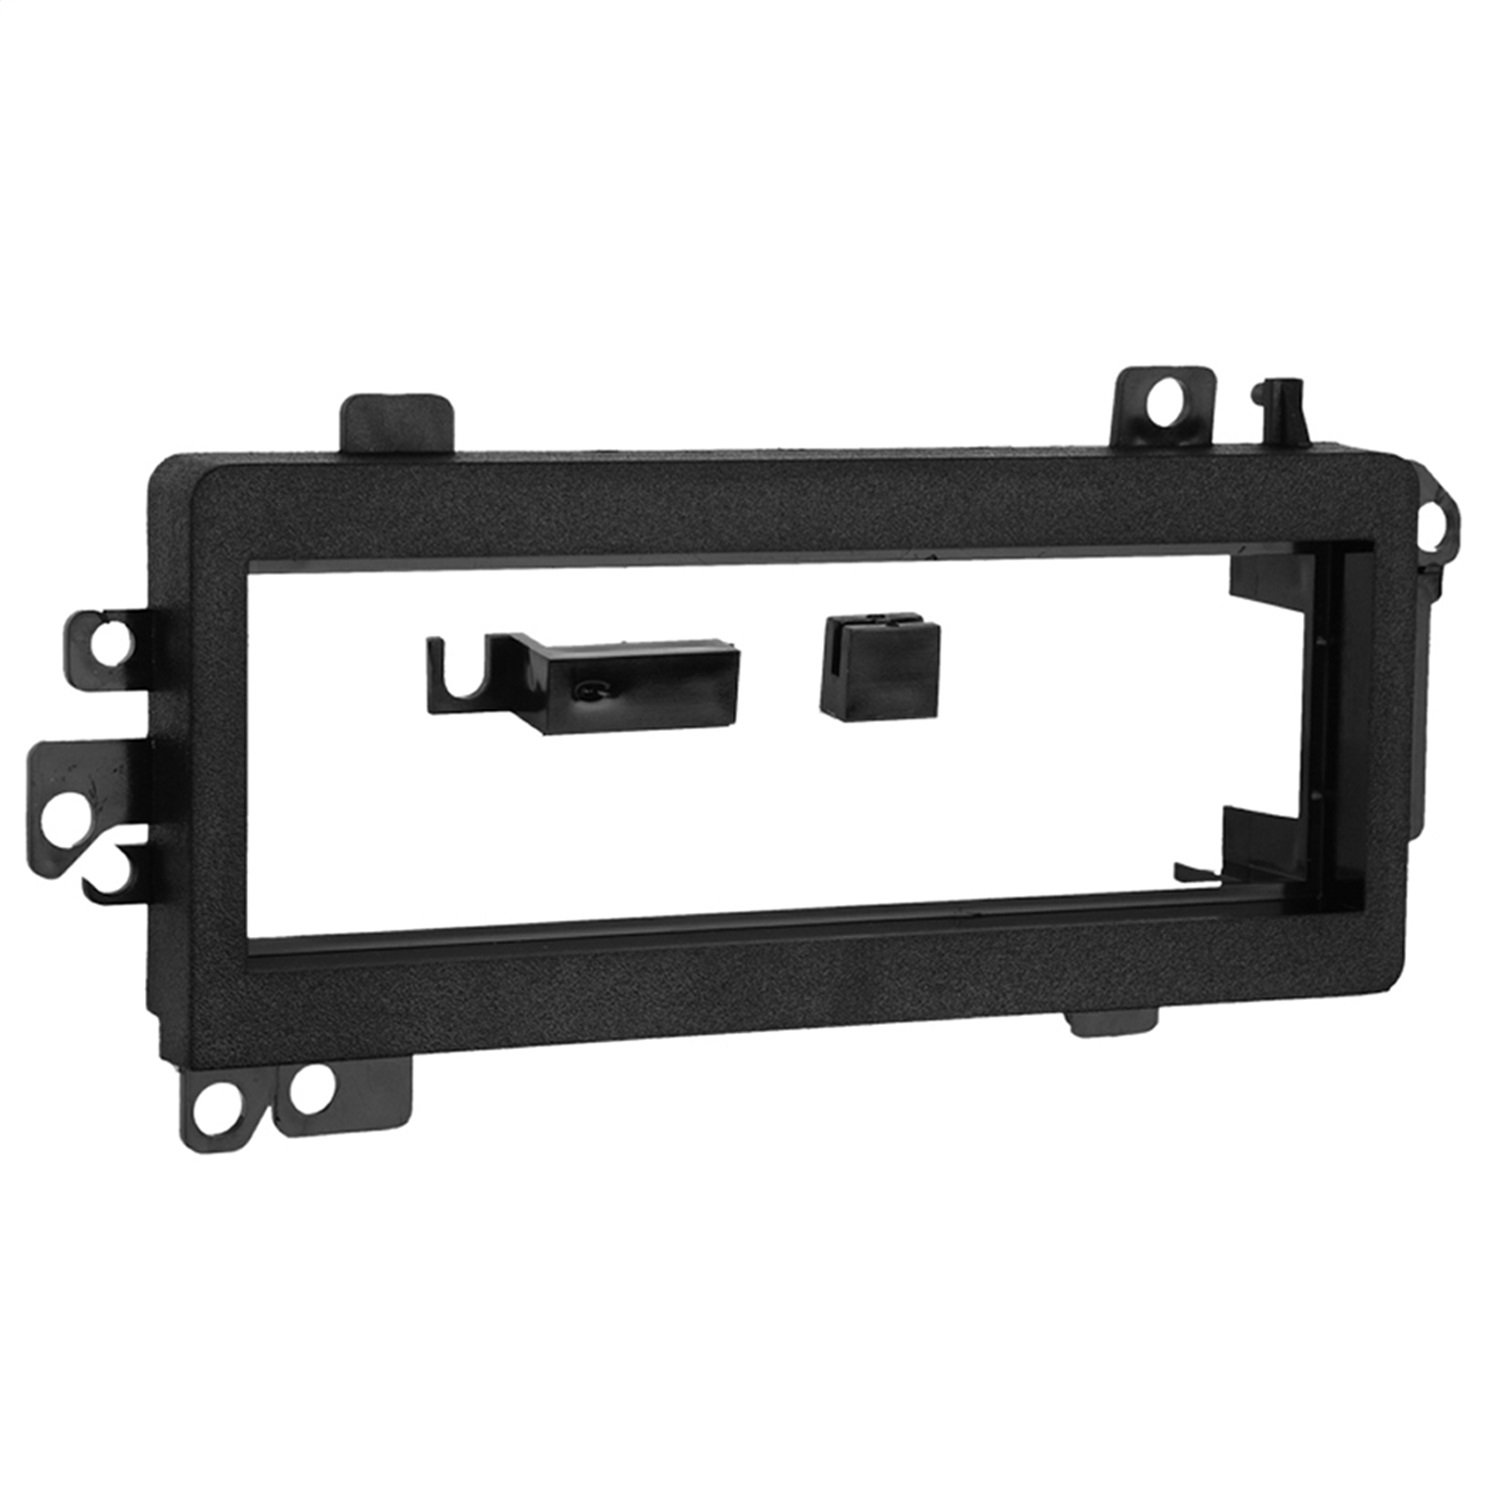 Metra 99-6700 Dash Kit For Ford/Chry/Jeep 74-03 Metra Electronics Corporation